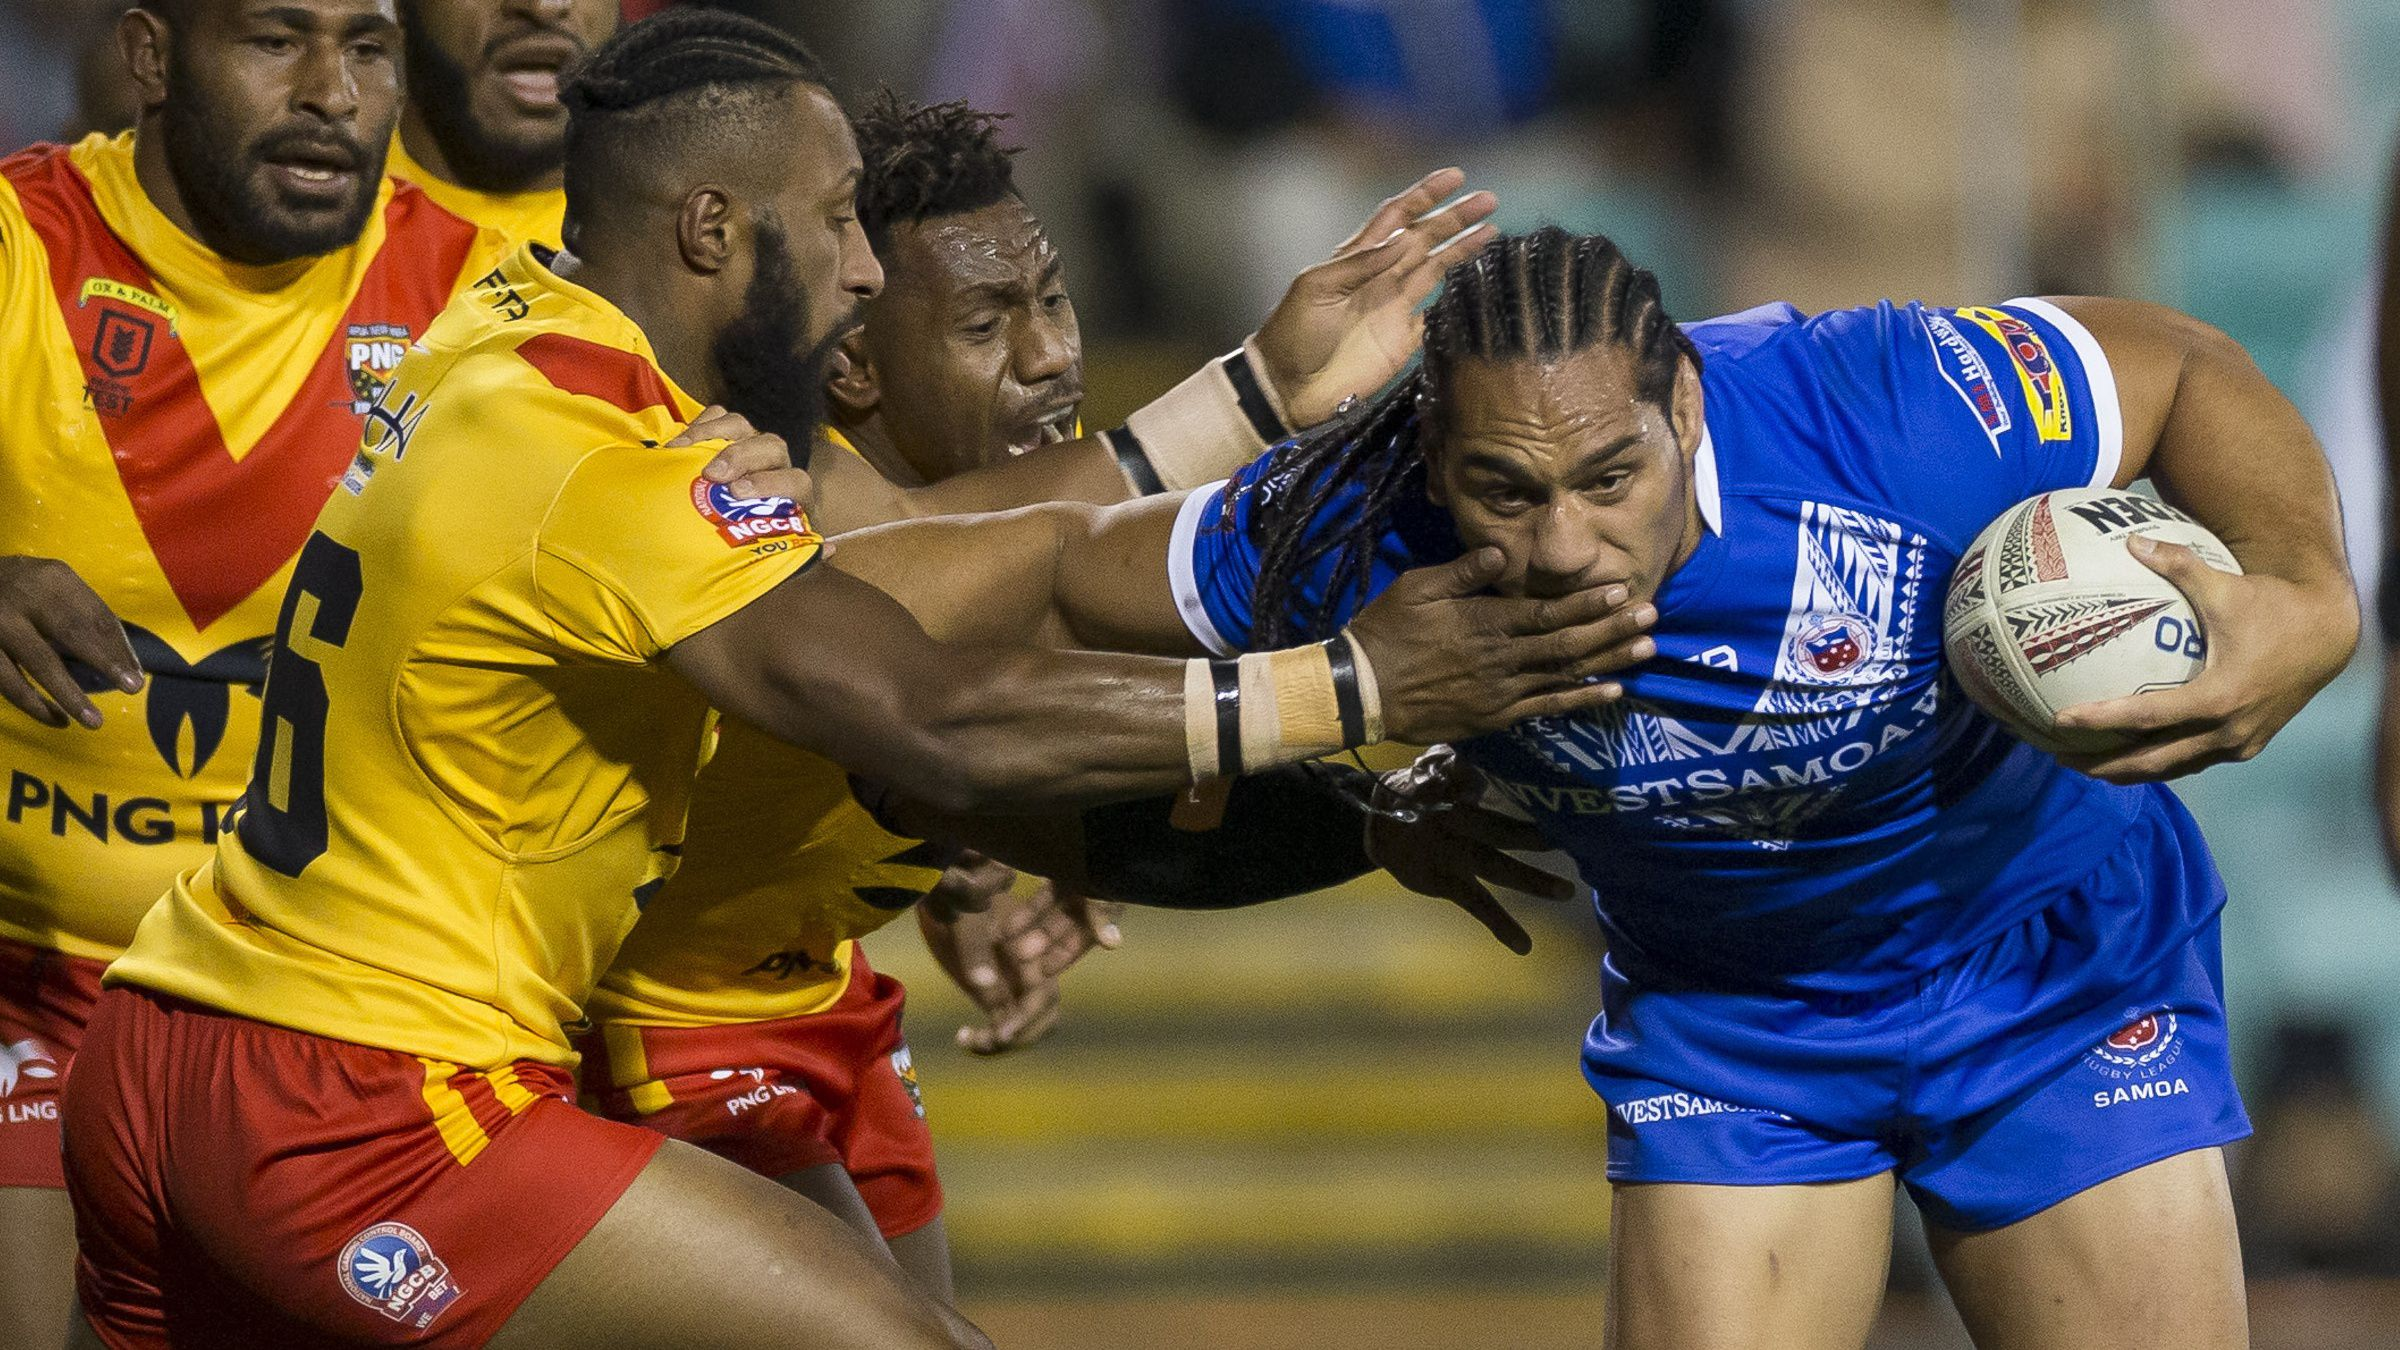 Unusual Try Seals Victory For Samoa